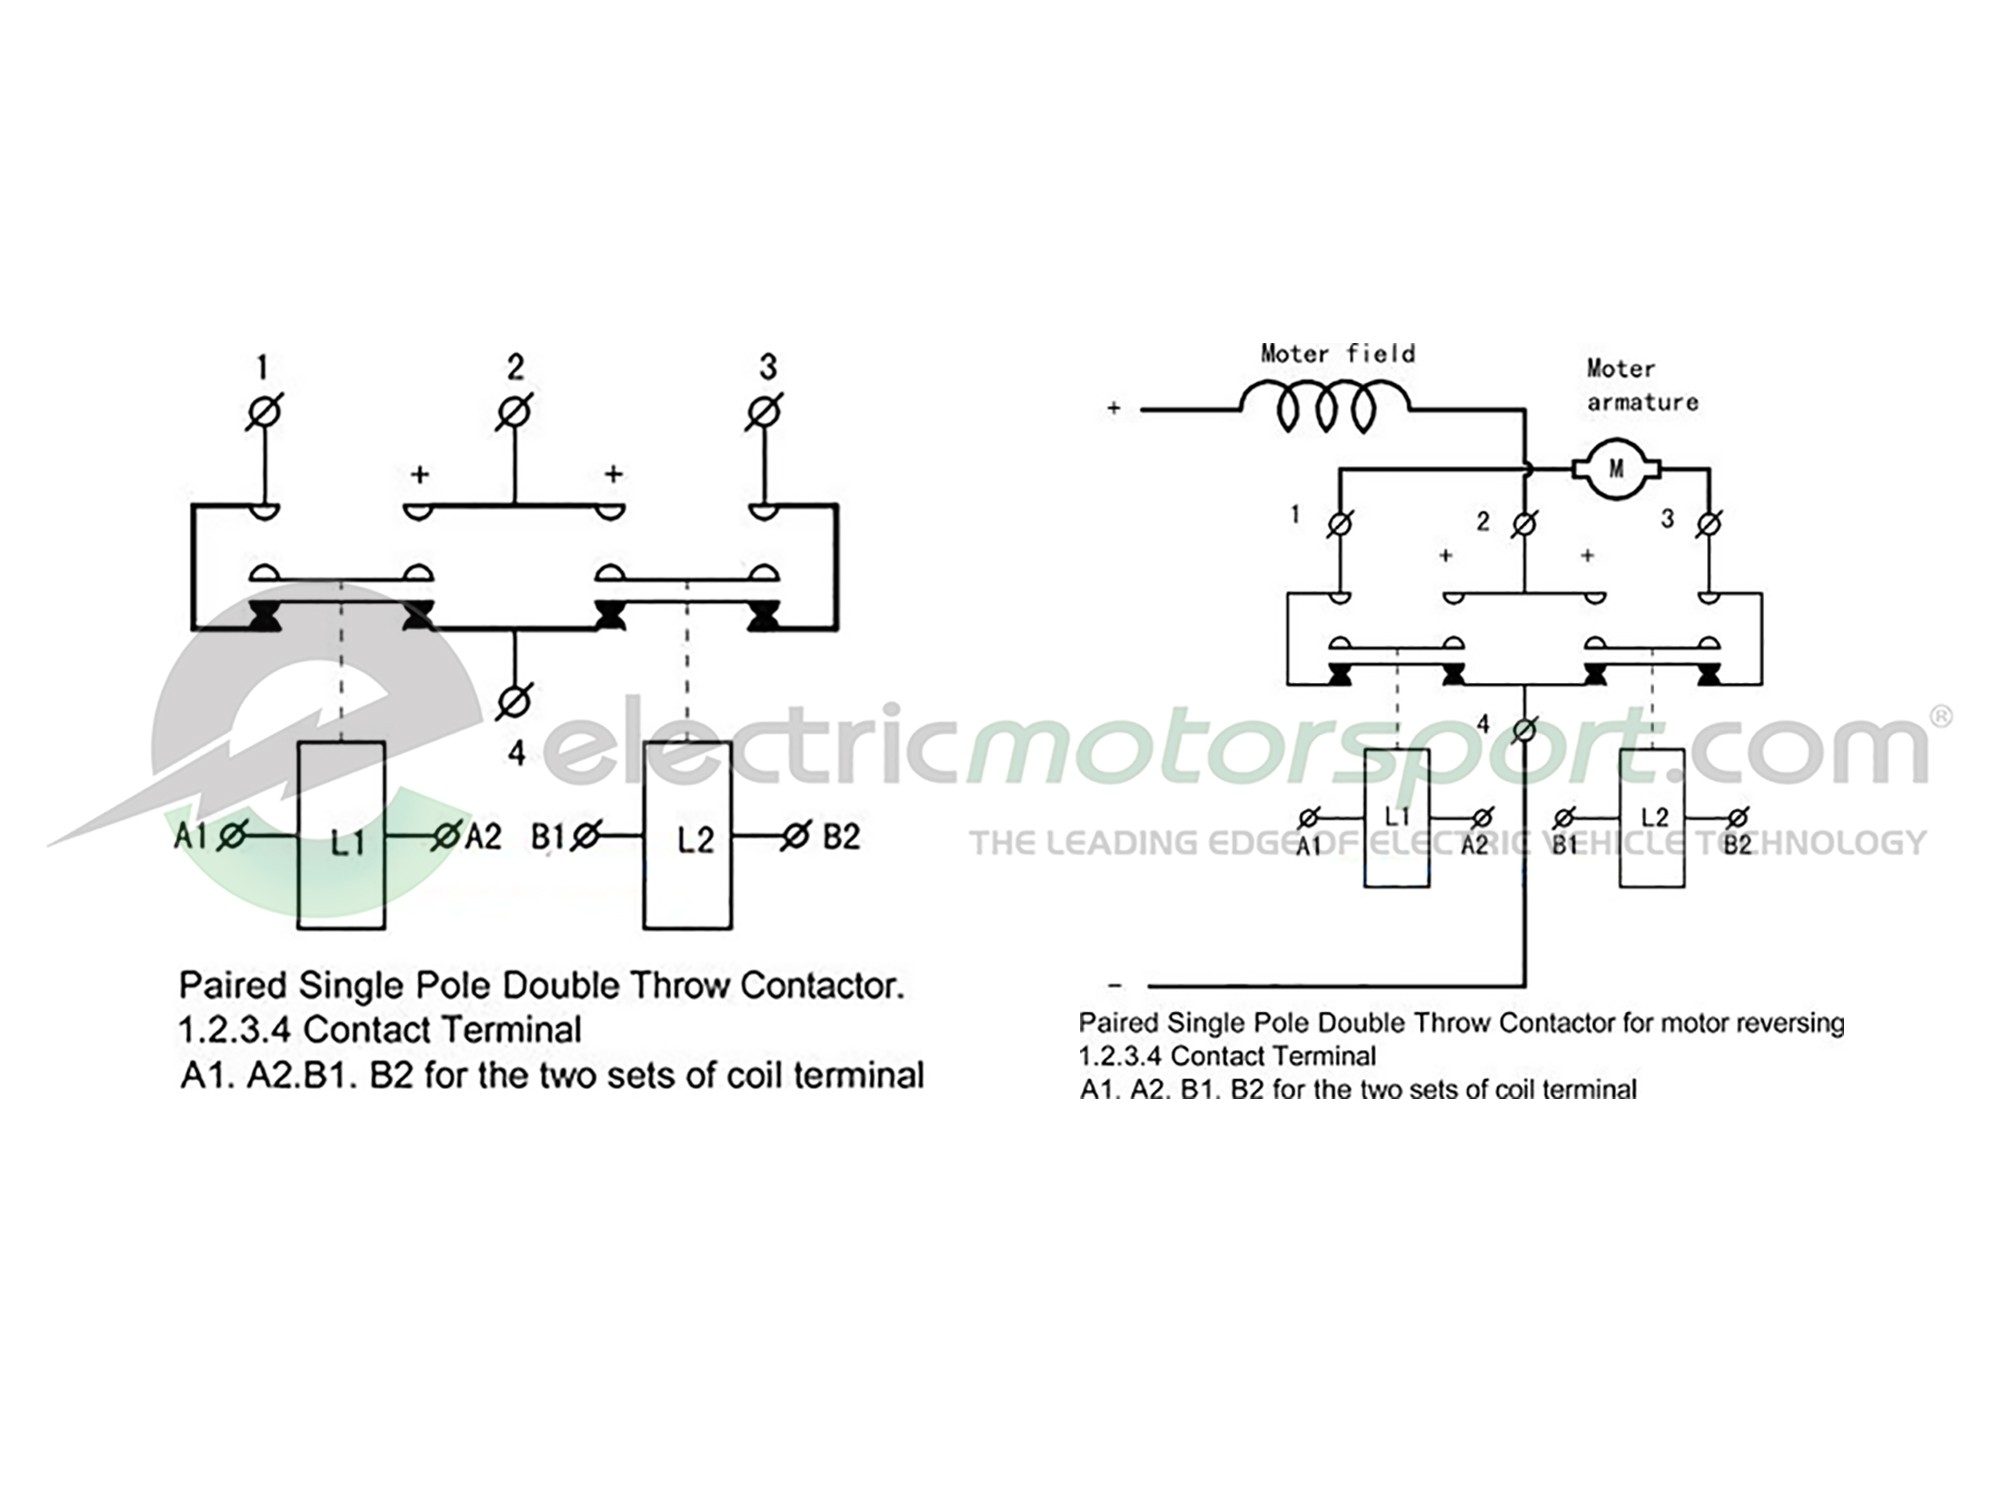 SW202 400A-Cont. Reversing (Change-over) Contactor KitElectric Motorsport